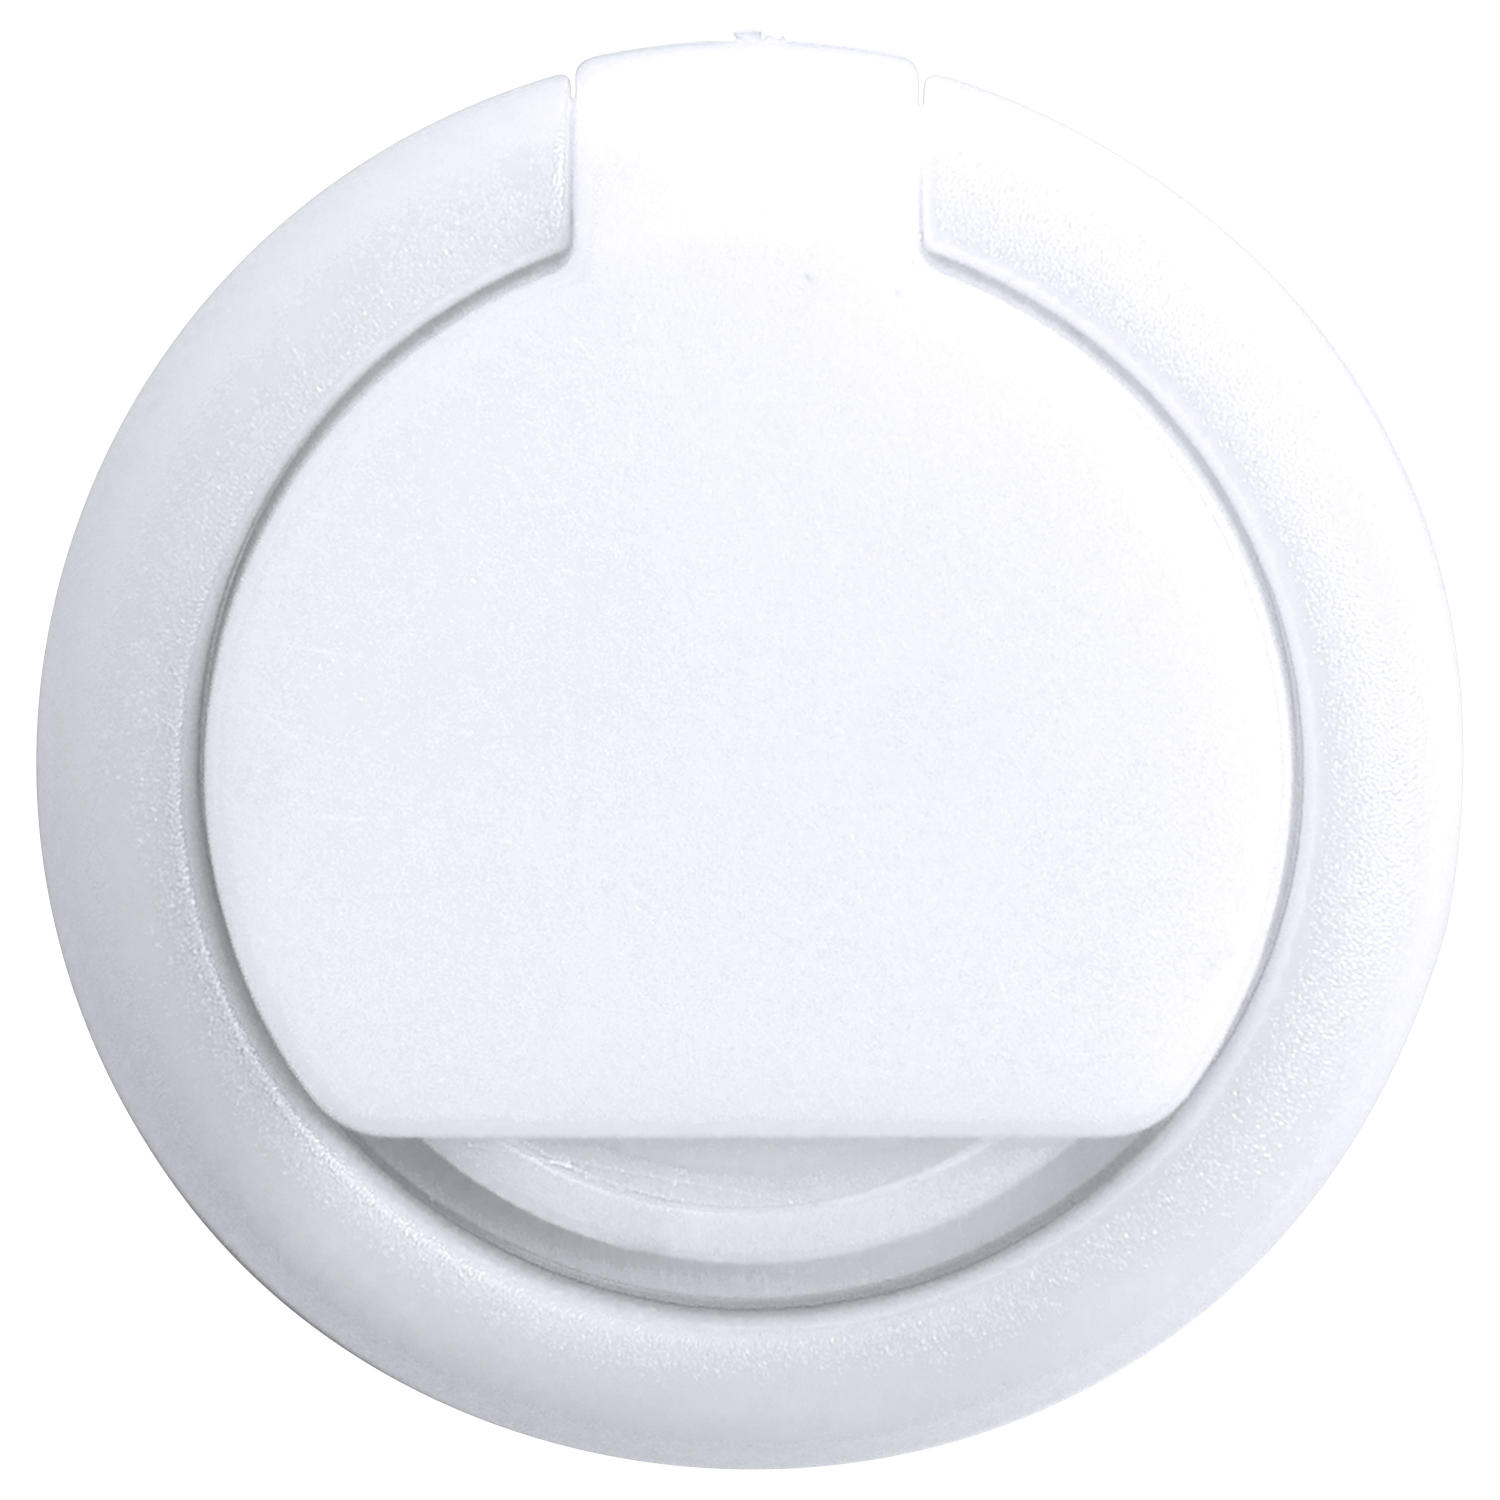 Phone Ring 868 (Plastic phone holder and phone ring) - hmi26868-02 (White)